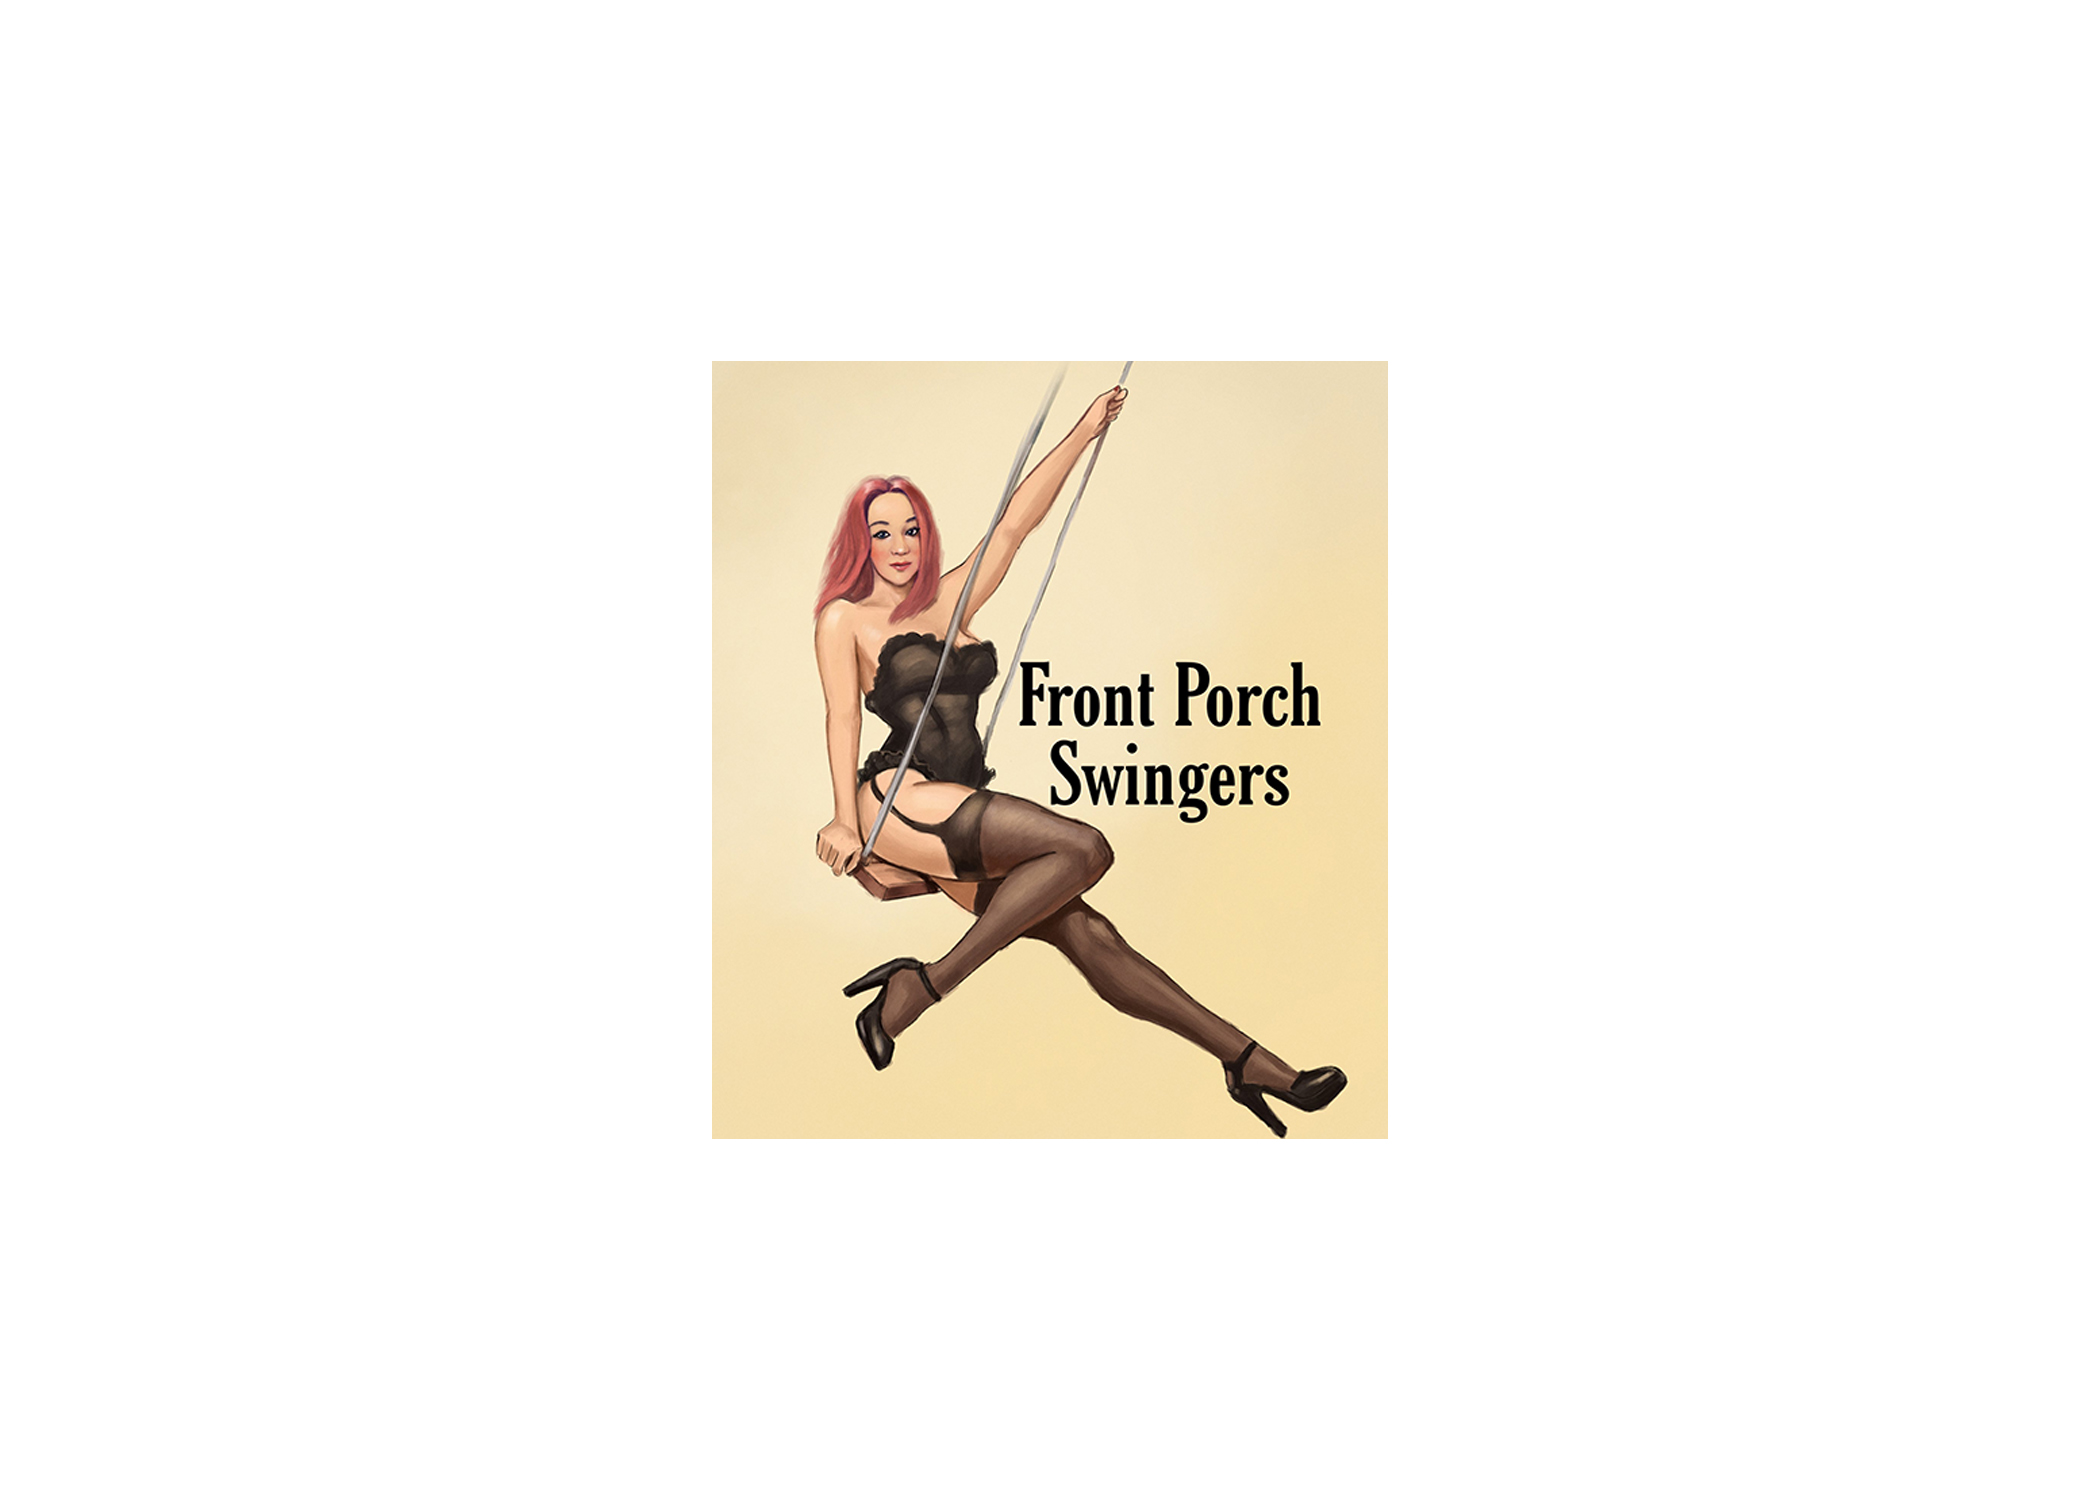 front porch swingers stickers 5x7